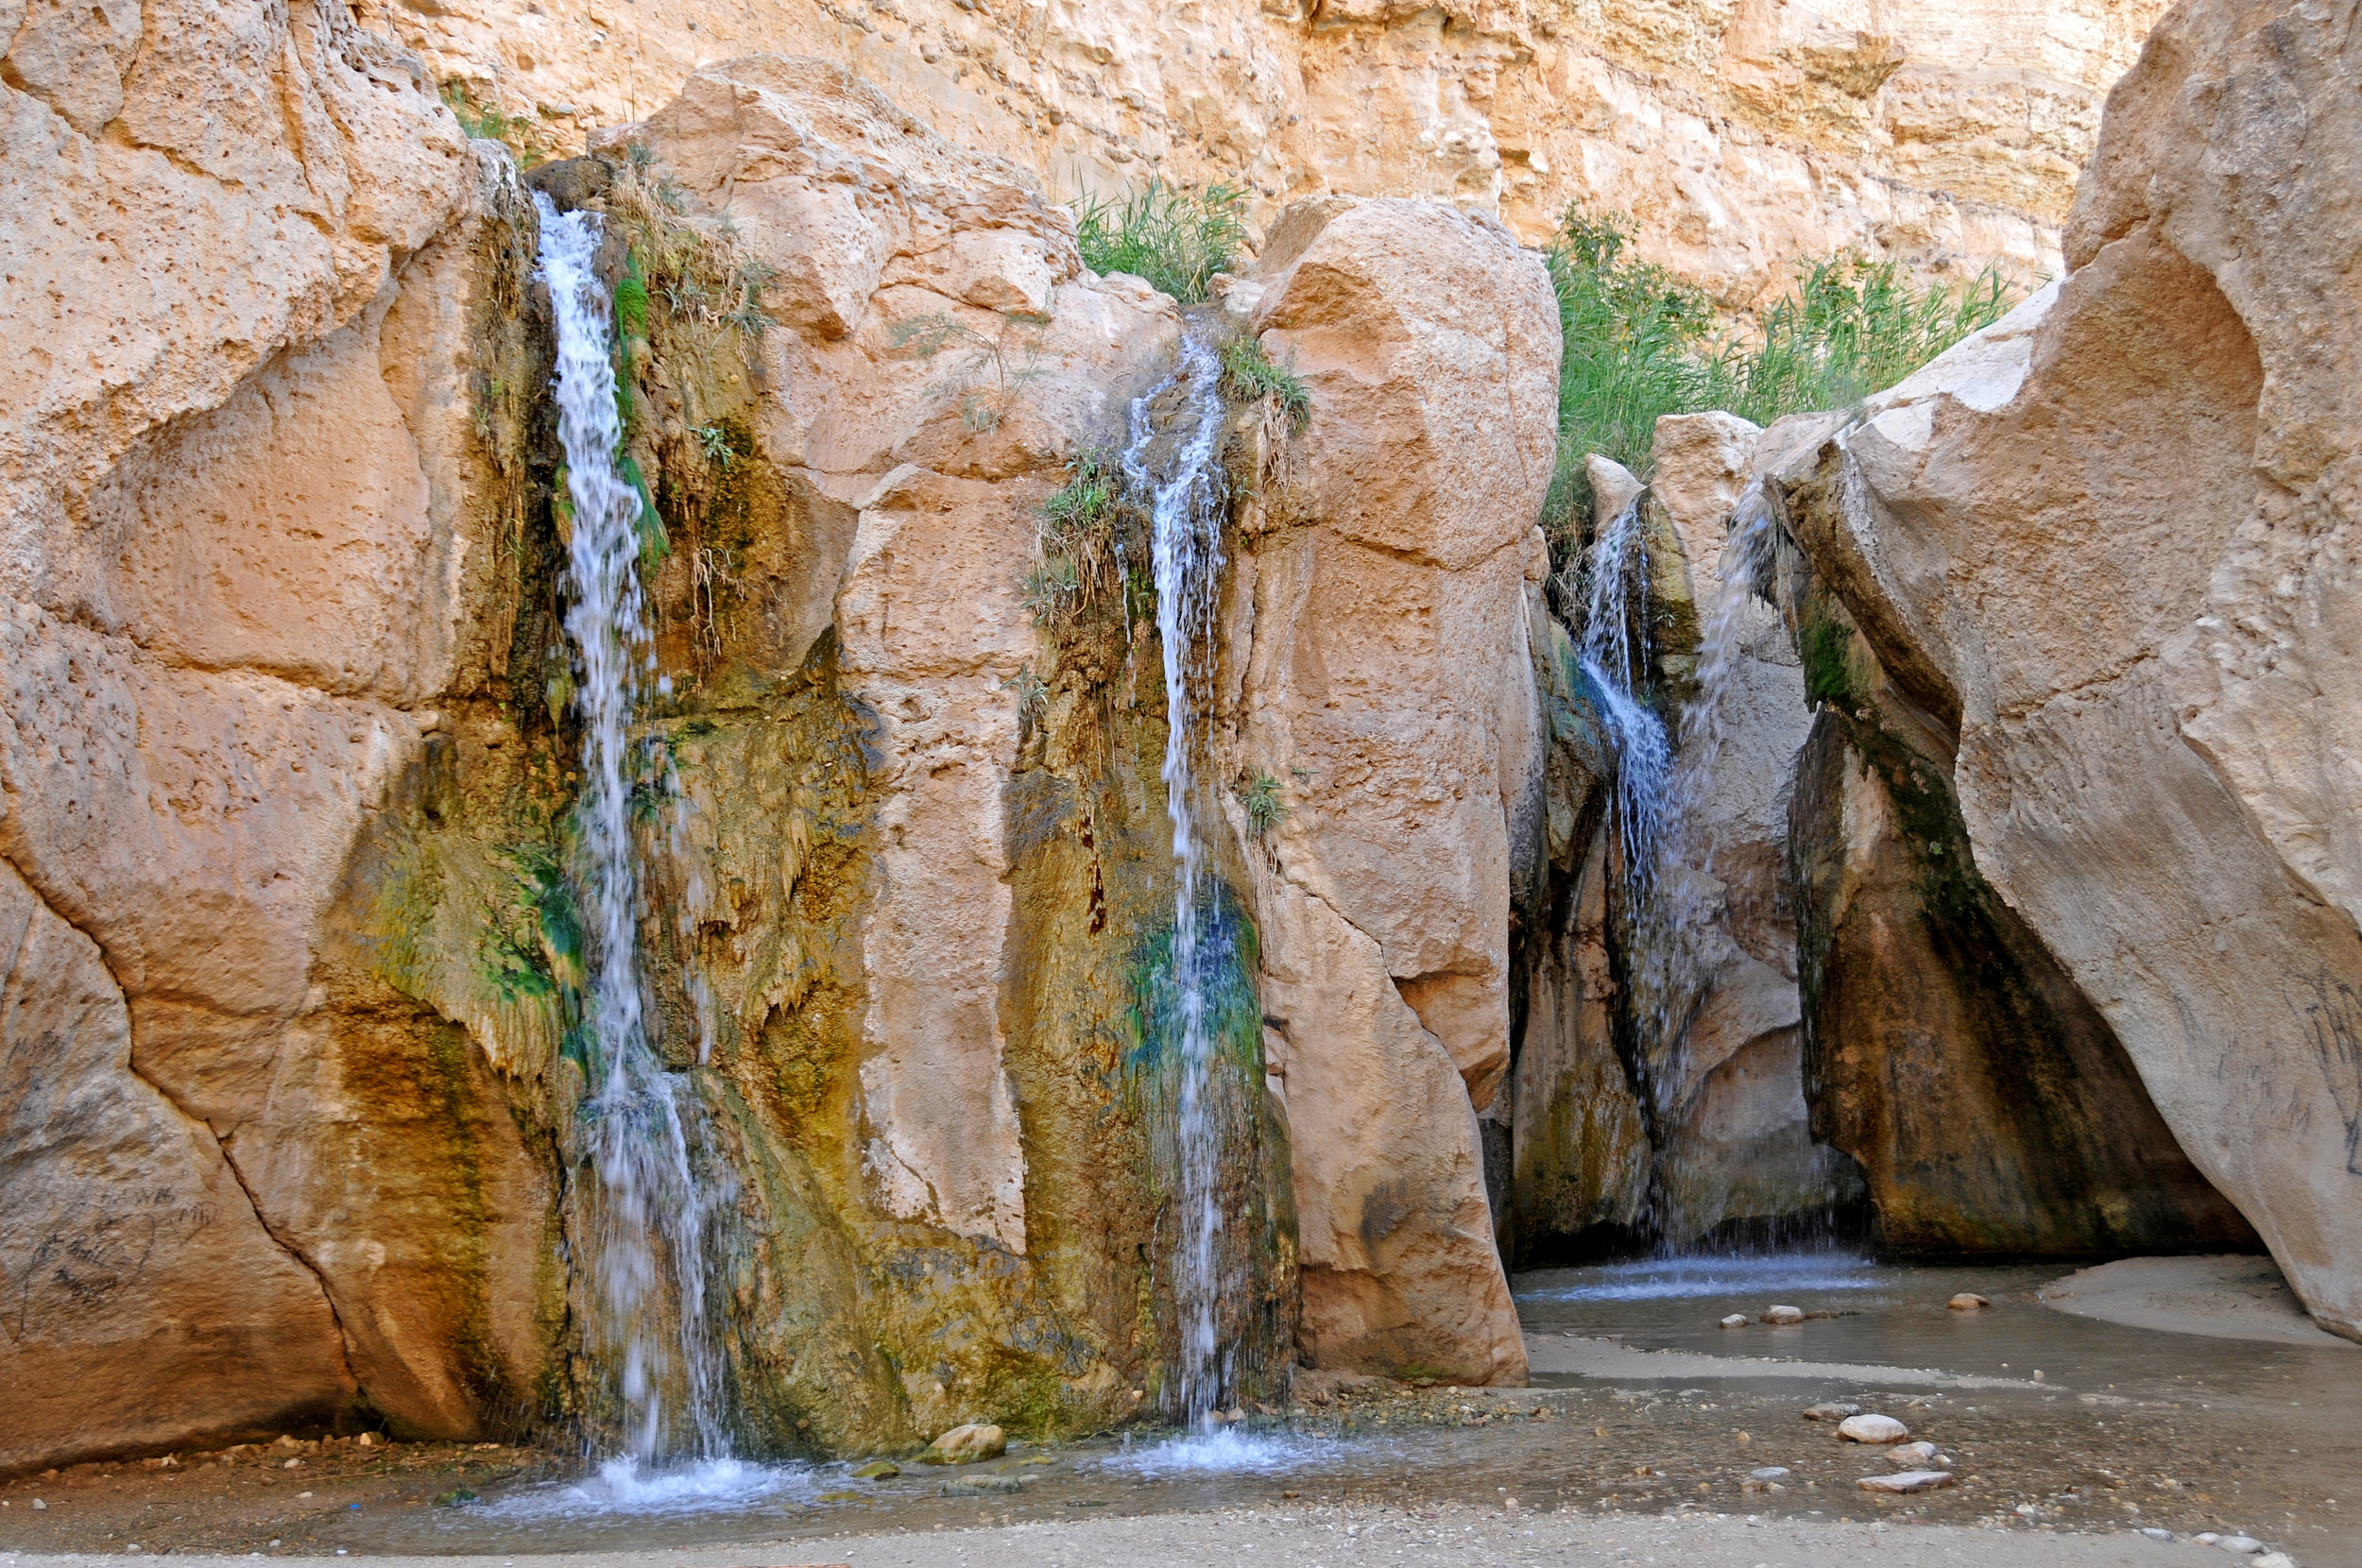 Canyons & oasis in Tunisia - Tozeur rises up out of the desert, nestled into a huge oasis that is home to hundreds and thousands of palm trees. This surprising, fascinating place feels a very long way away from Europe, which is in fact just a few hours away.RECOMMENDED ITINERARYKNOW MORE